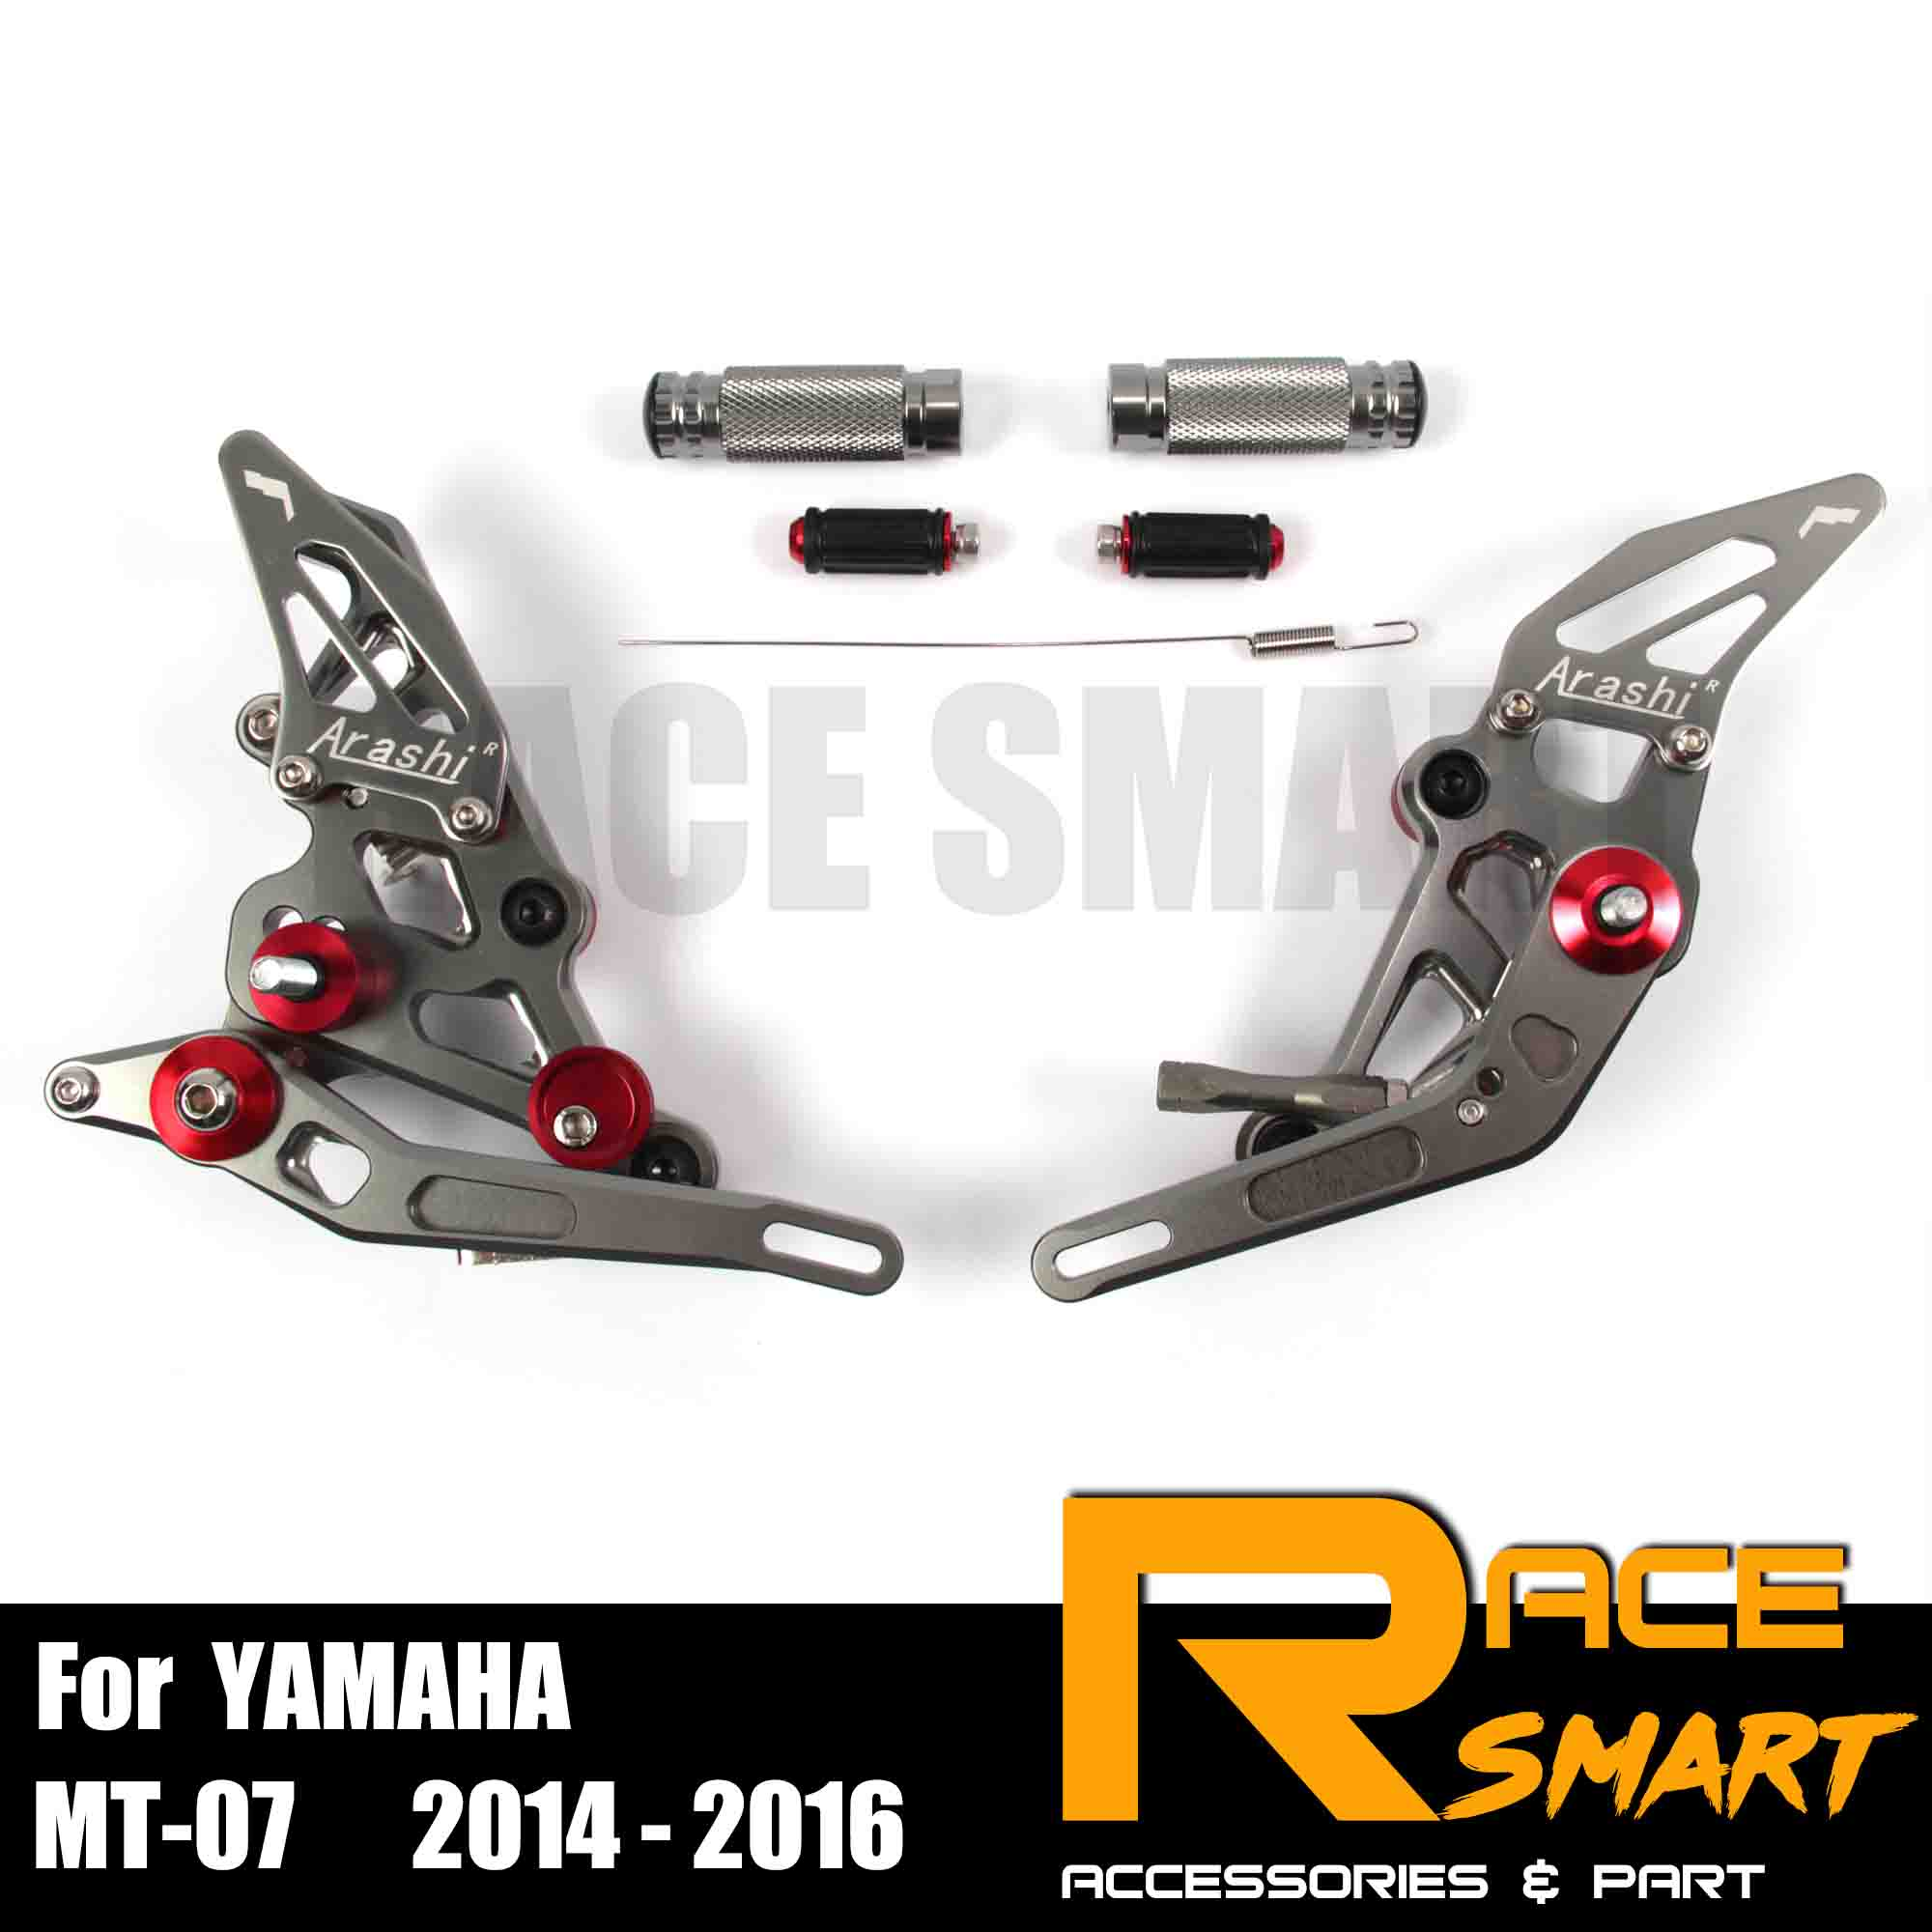 For YAMAHA MT-07 2014 - 2016 CNC Adjustable Rearset Footpegs Footrest Foot Rest Pegs Pedal Motorcycle Accessories 2015 14 15 16